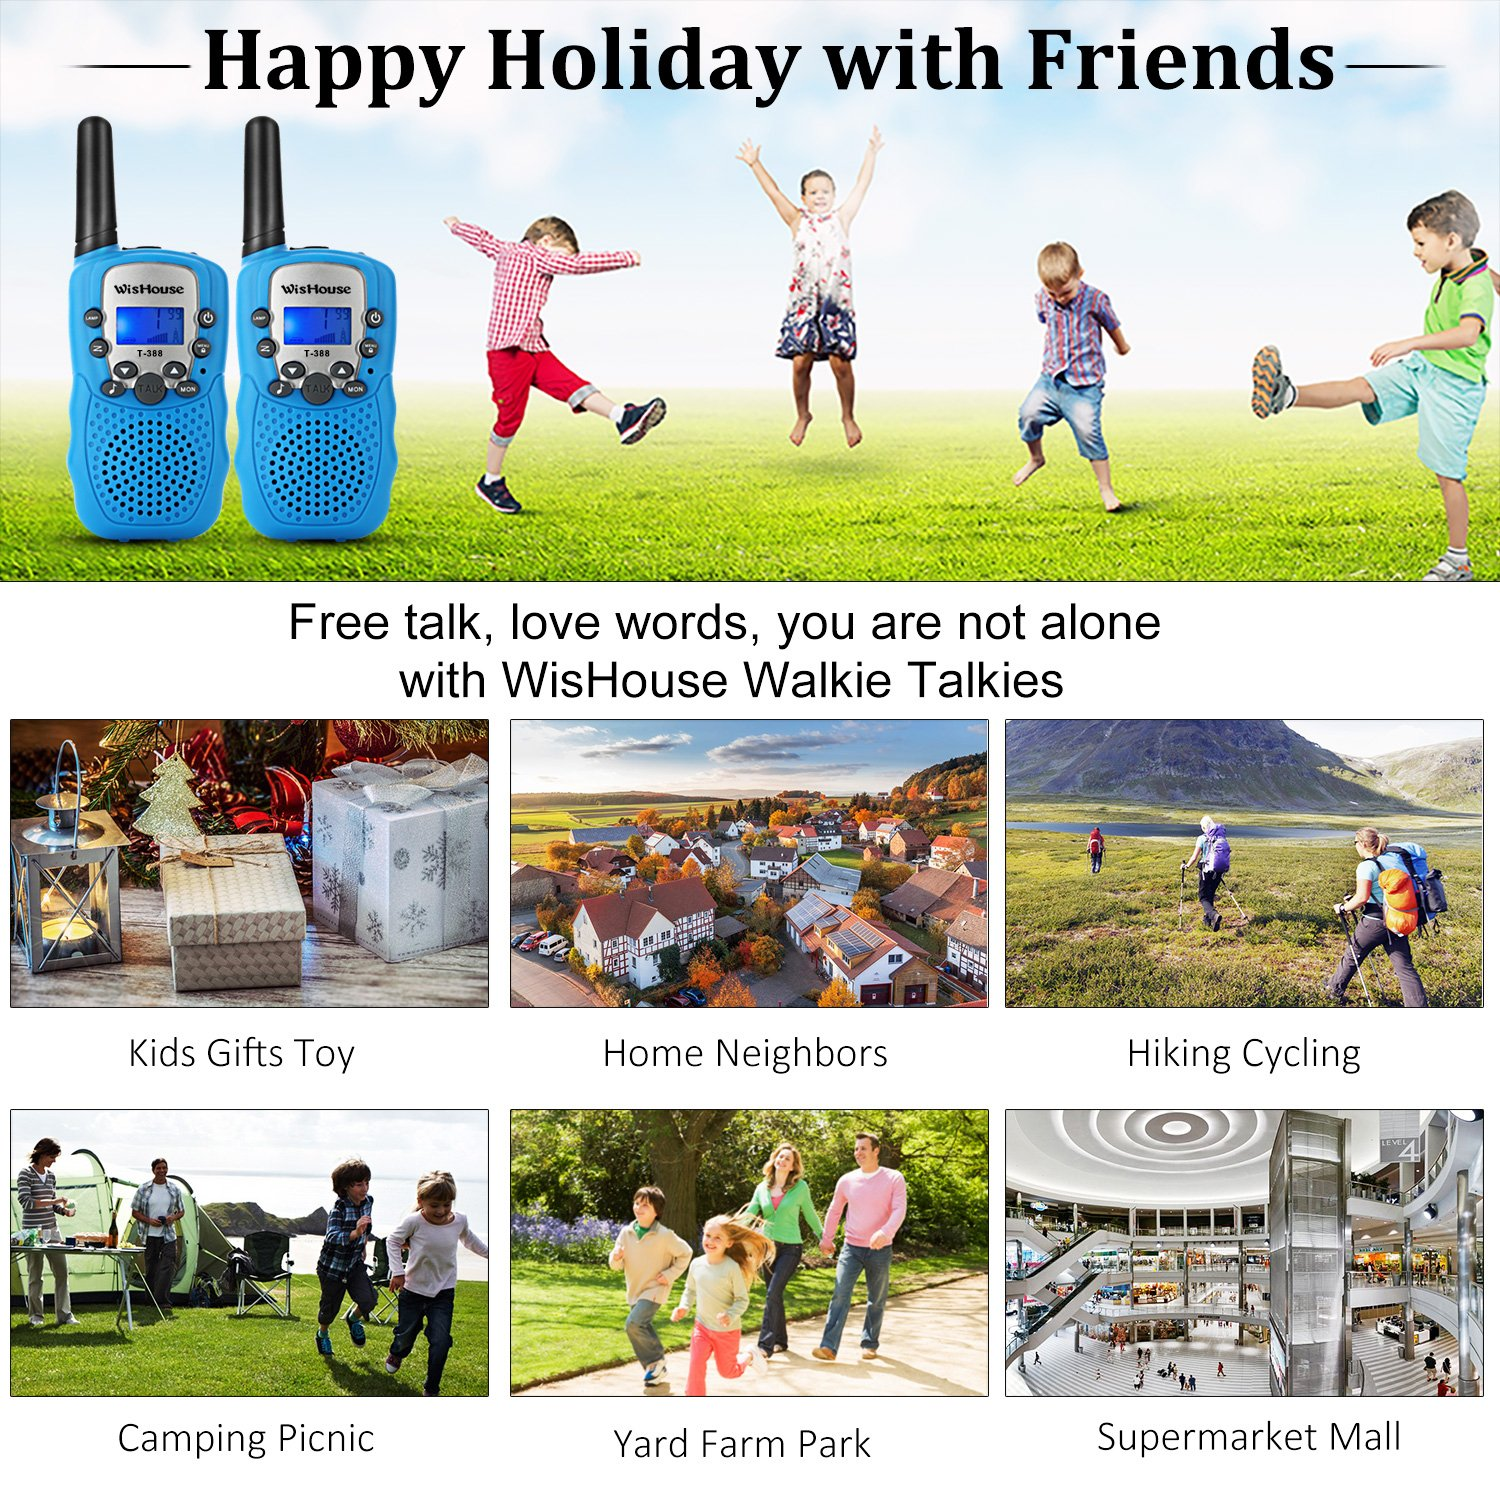 WisHouse Walkie Talkies for Kids,Fashion Toys for Boys and Girls Best Handheld Two Way Radio with Flashlight for 4 Year Old and up to Camping Hiking Riding and Cruise Ship(T388 Blue 4 Pack) by Wishouse (Image #2)